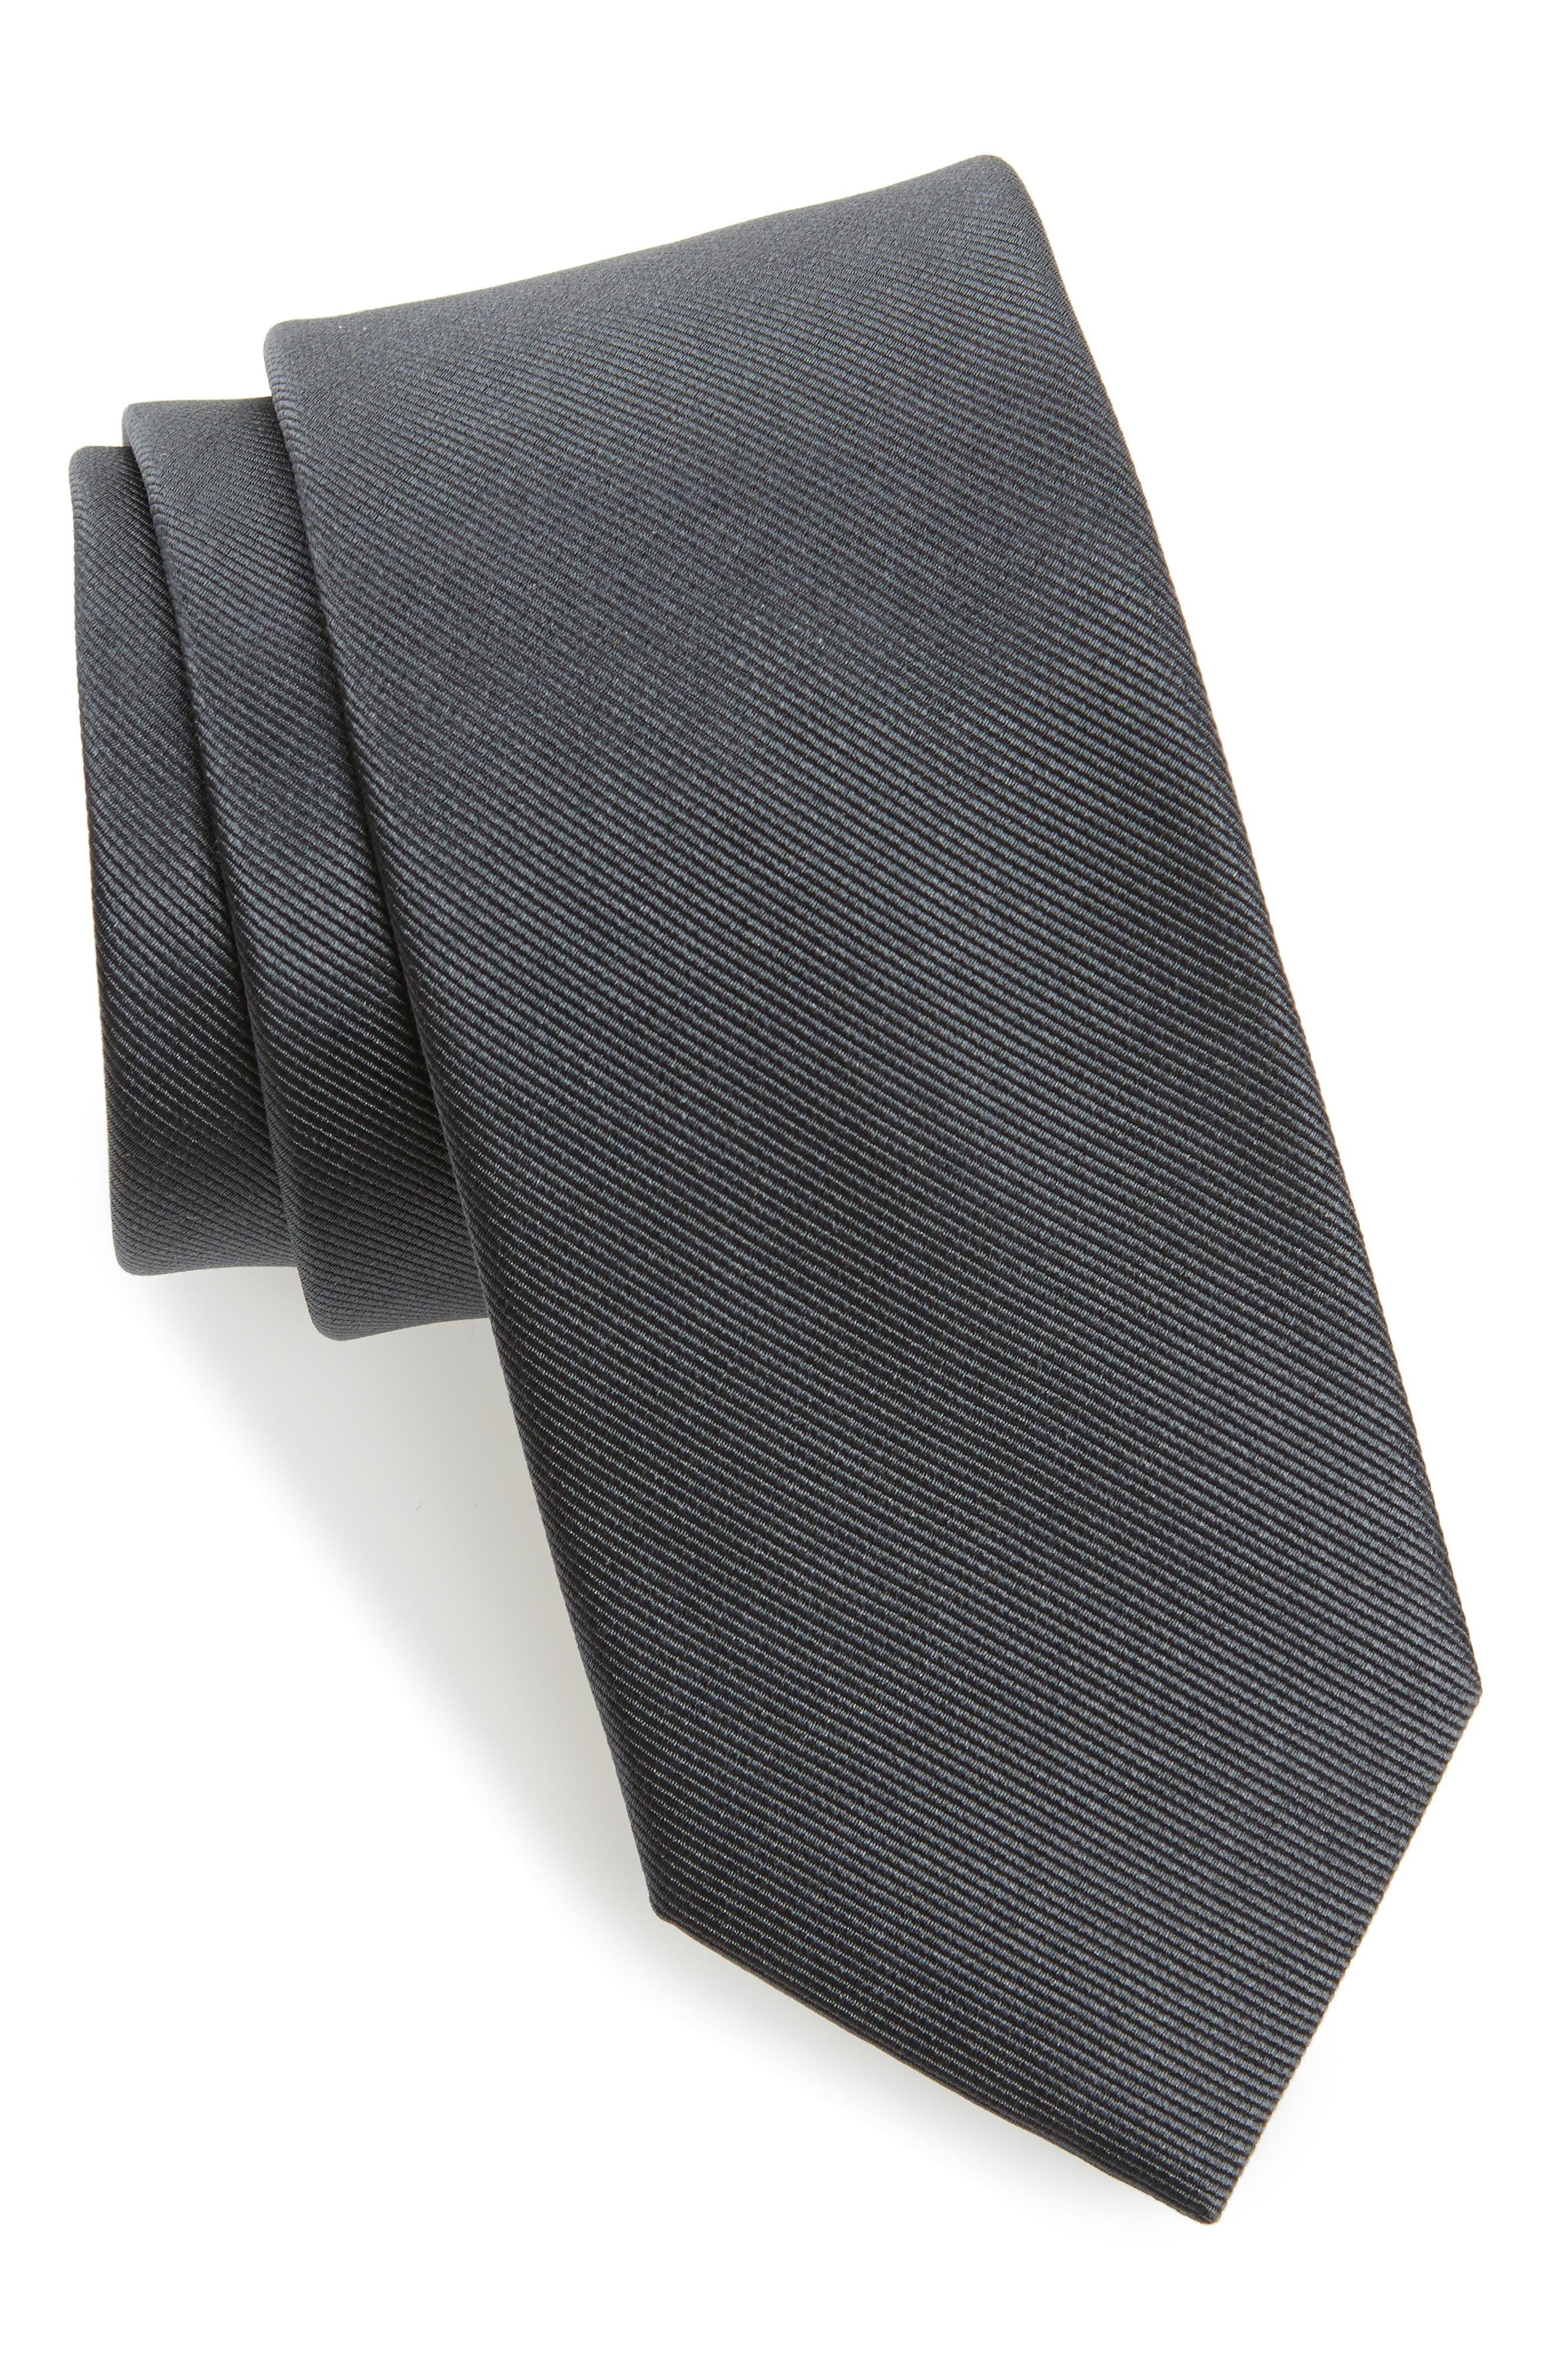 Main Image - The Tie Bar Grosgrain Silk Tie